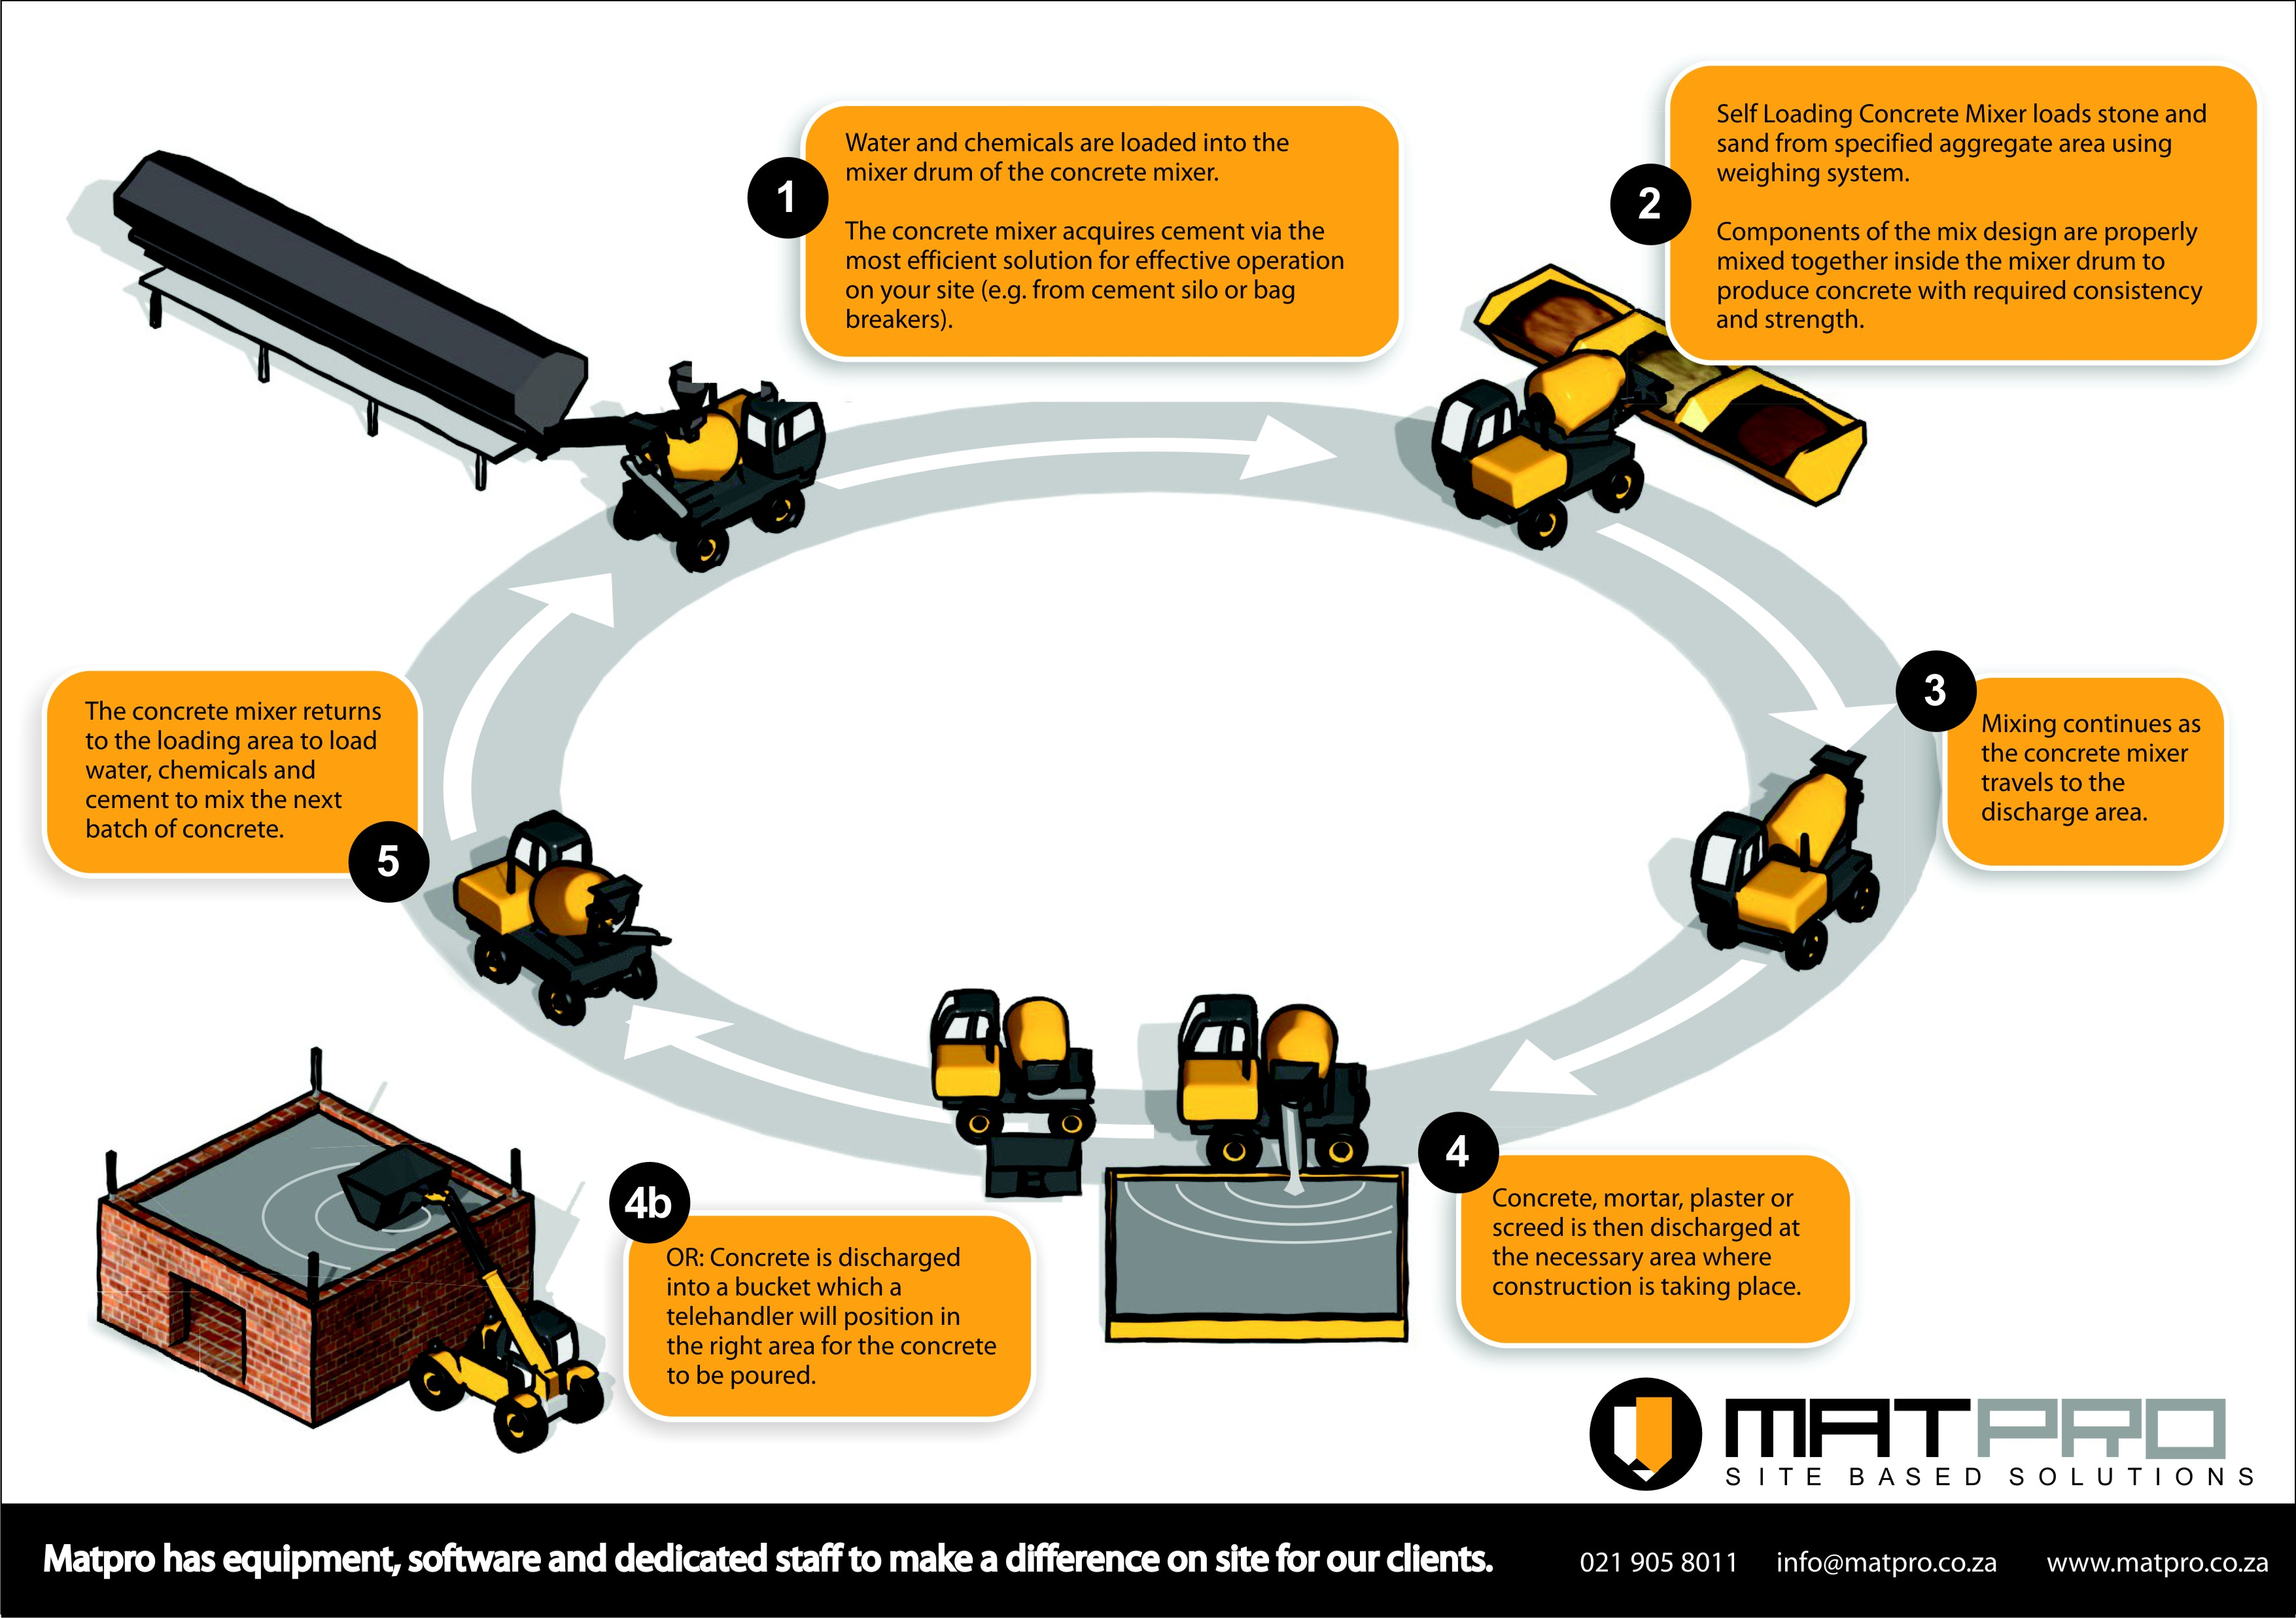 Matpro Site Based Solutions Process